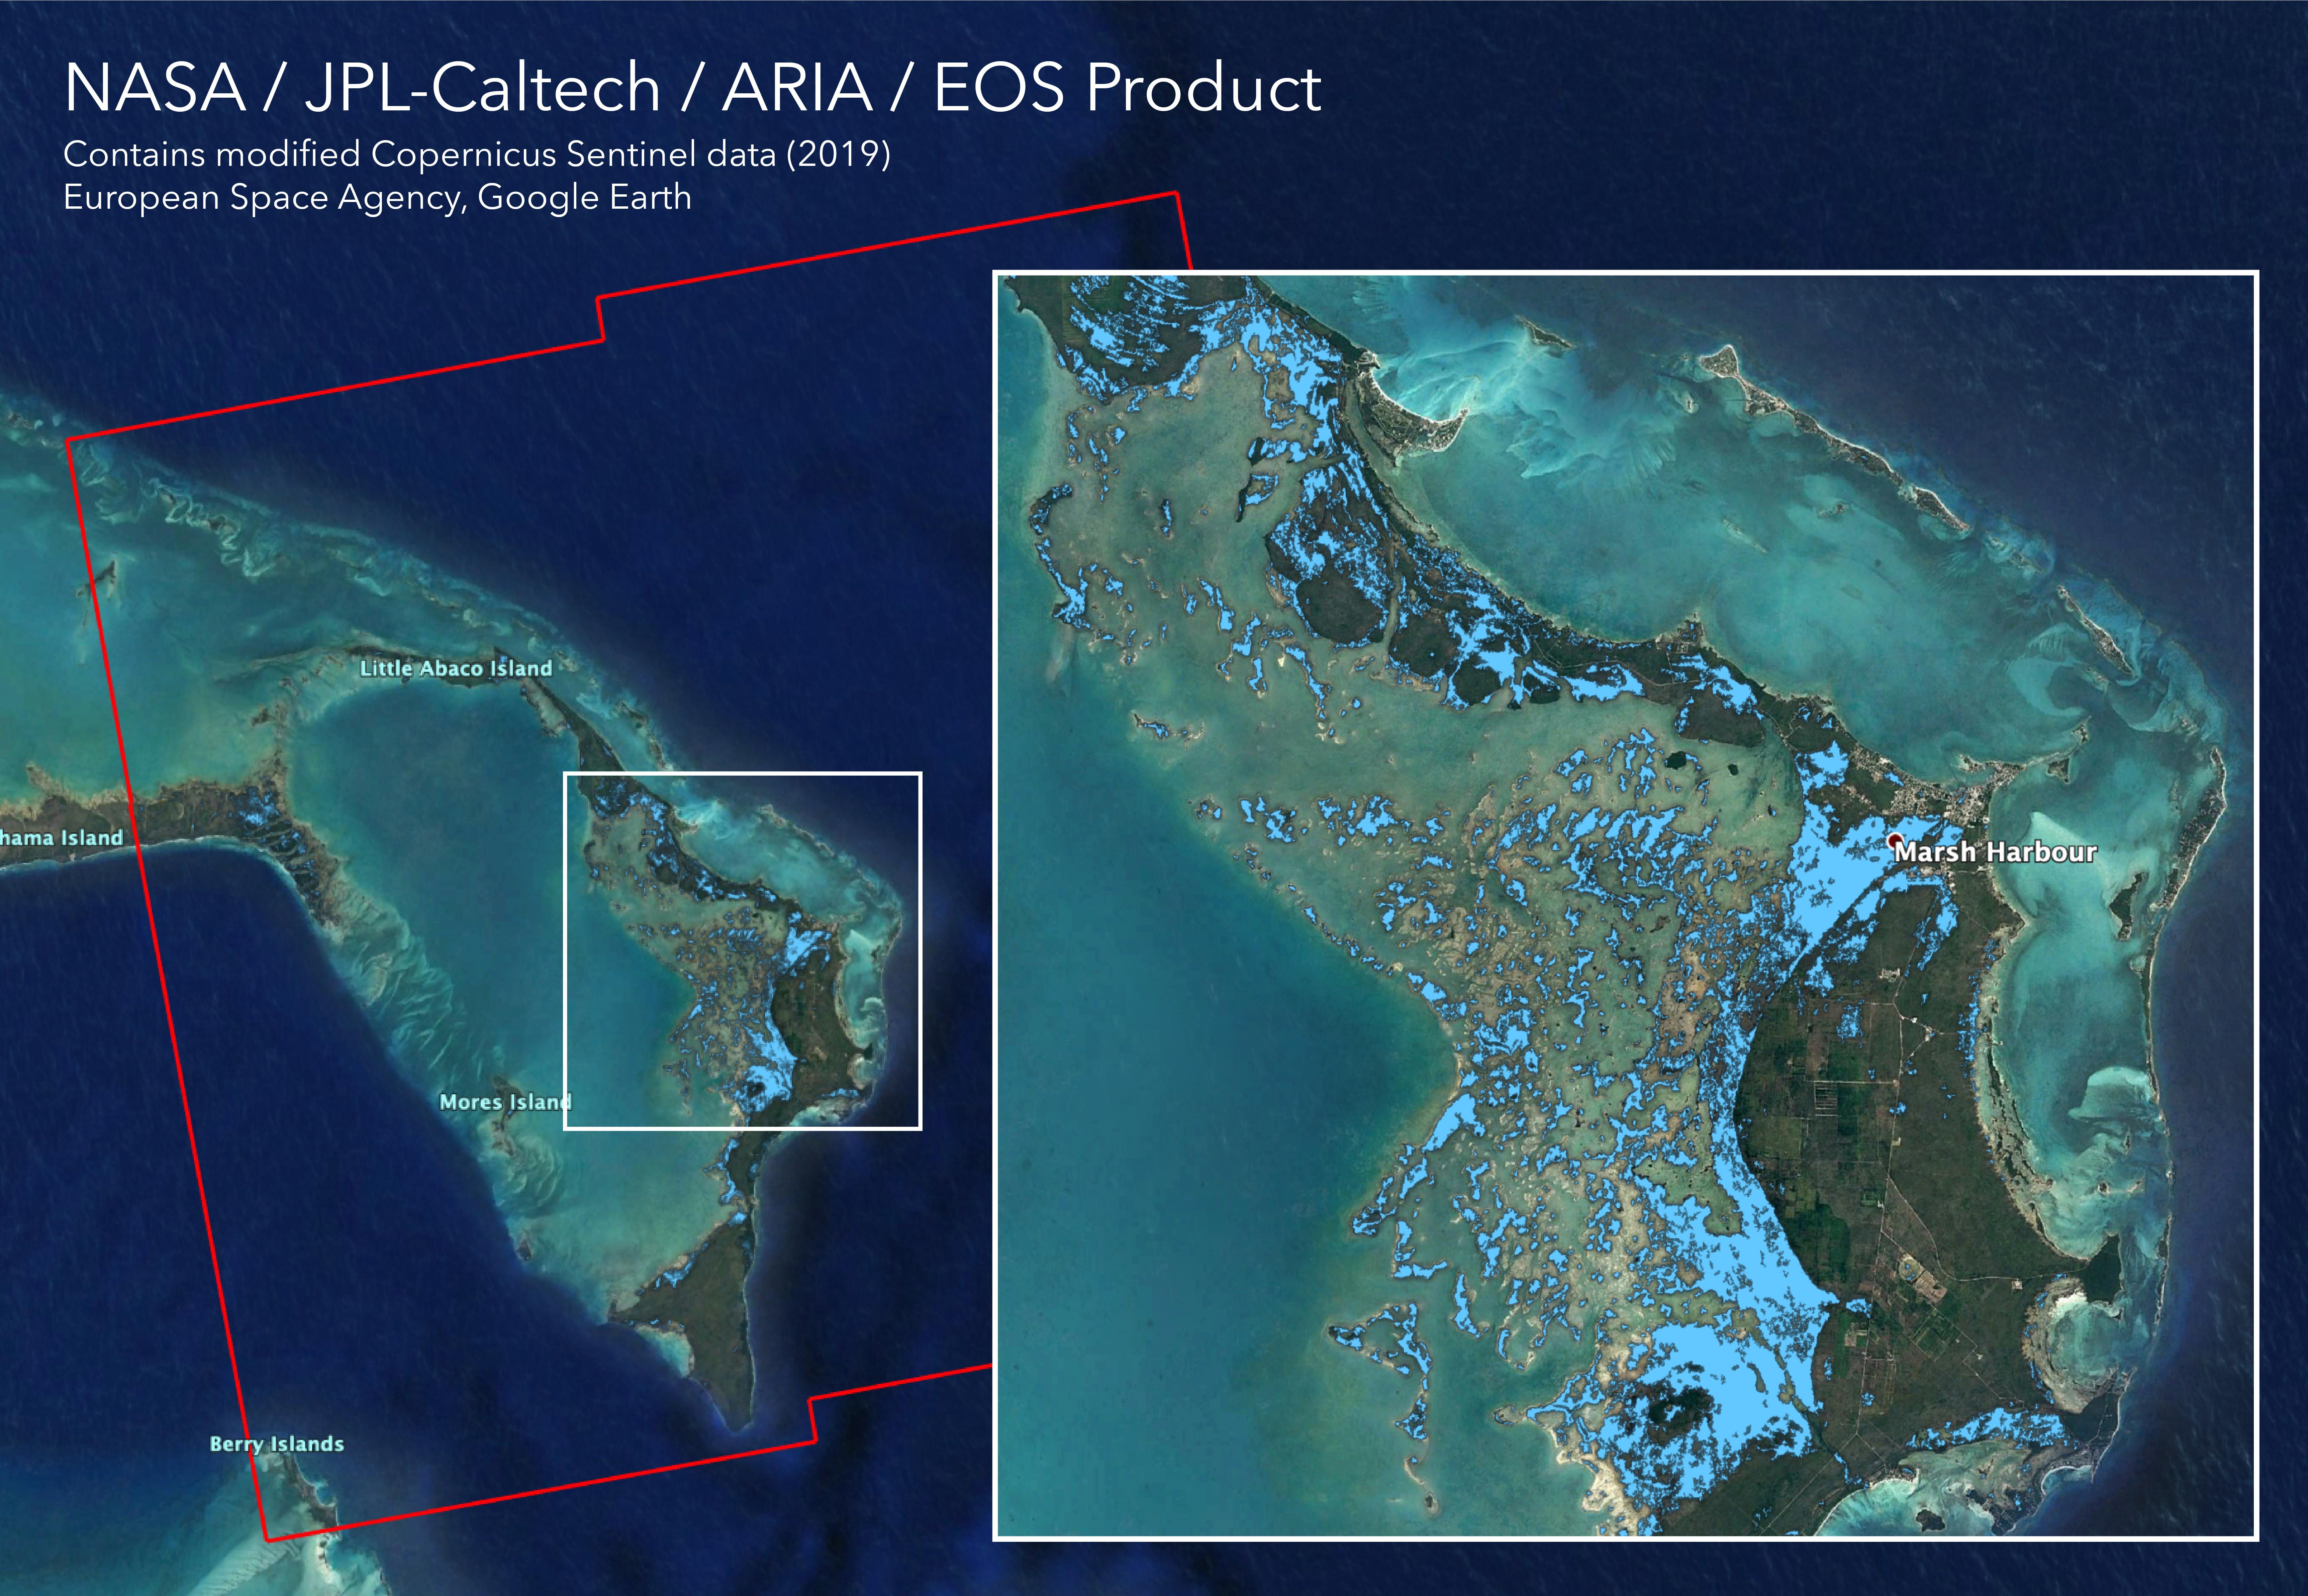 NASAs ARIA team used satellite data acquired on Sept. 2, 2019, to map flooding in the Bahamas in the wake of Hurricane Dorian.